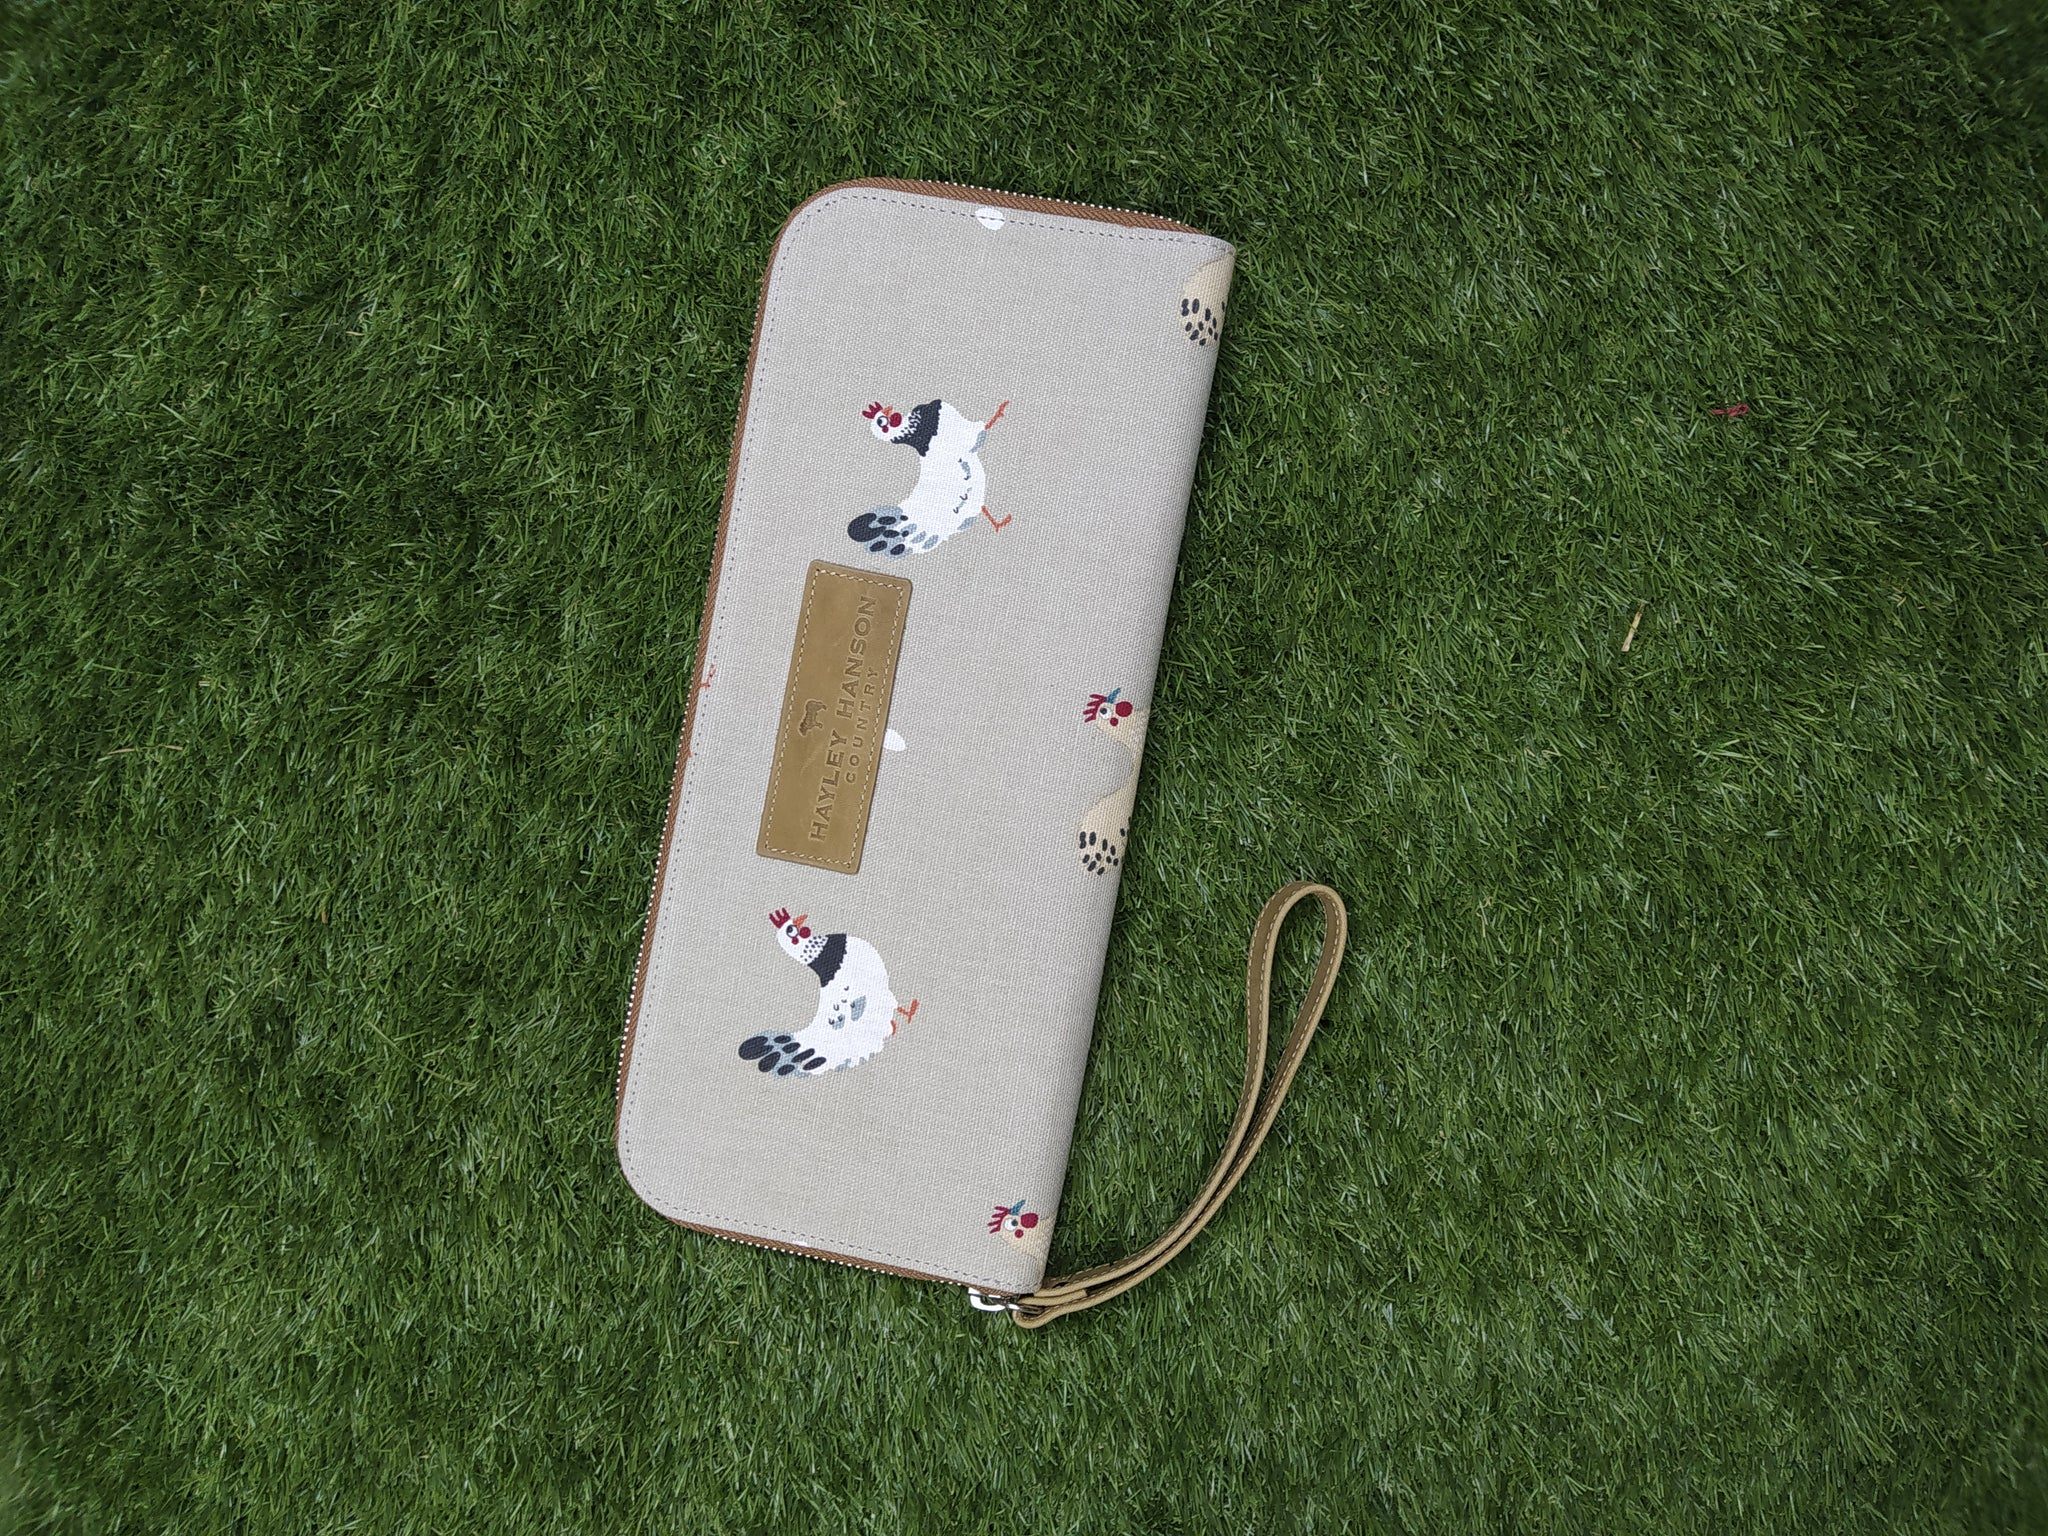 Country clutch with wrist strap inc Ltd edition Sophie Allport fabrics